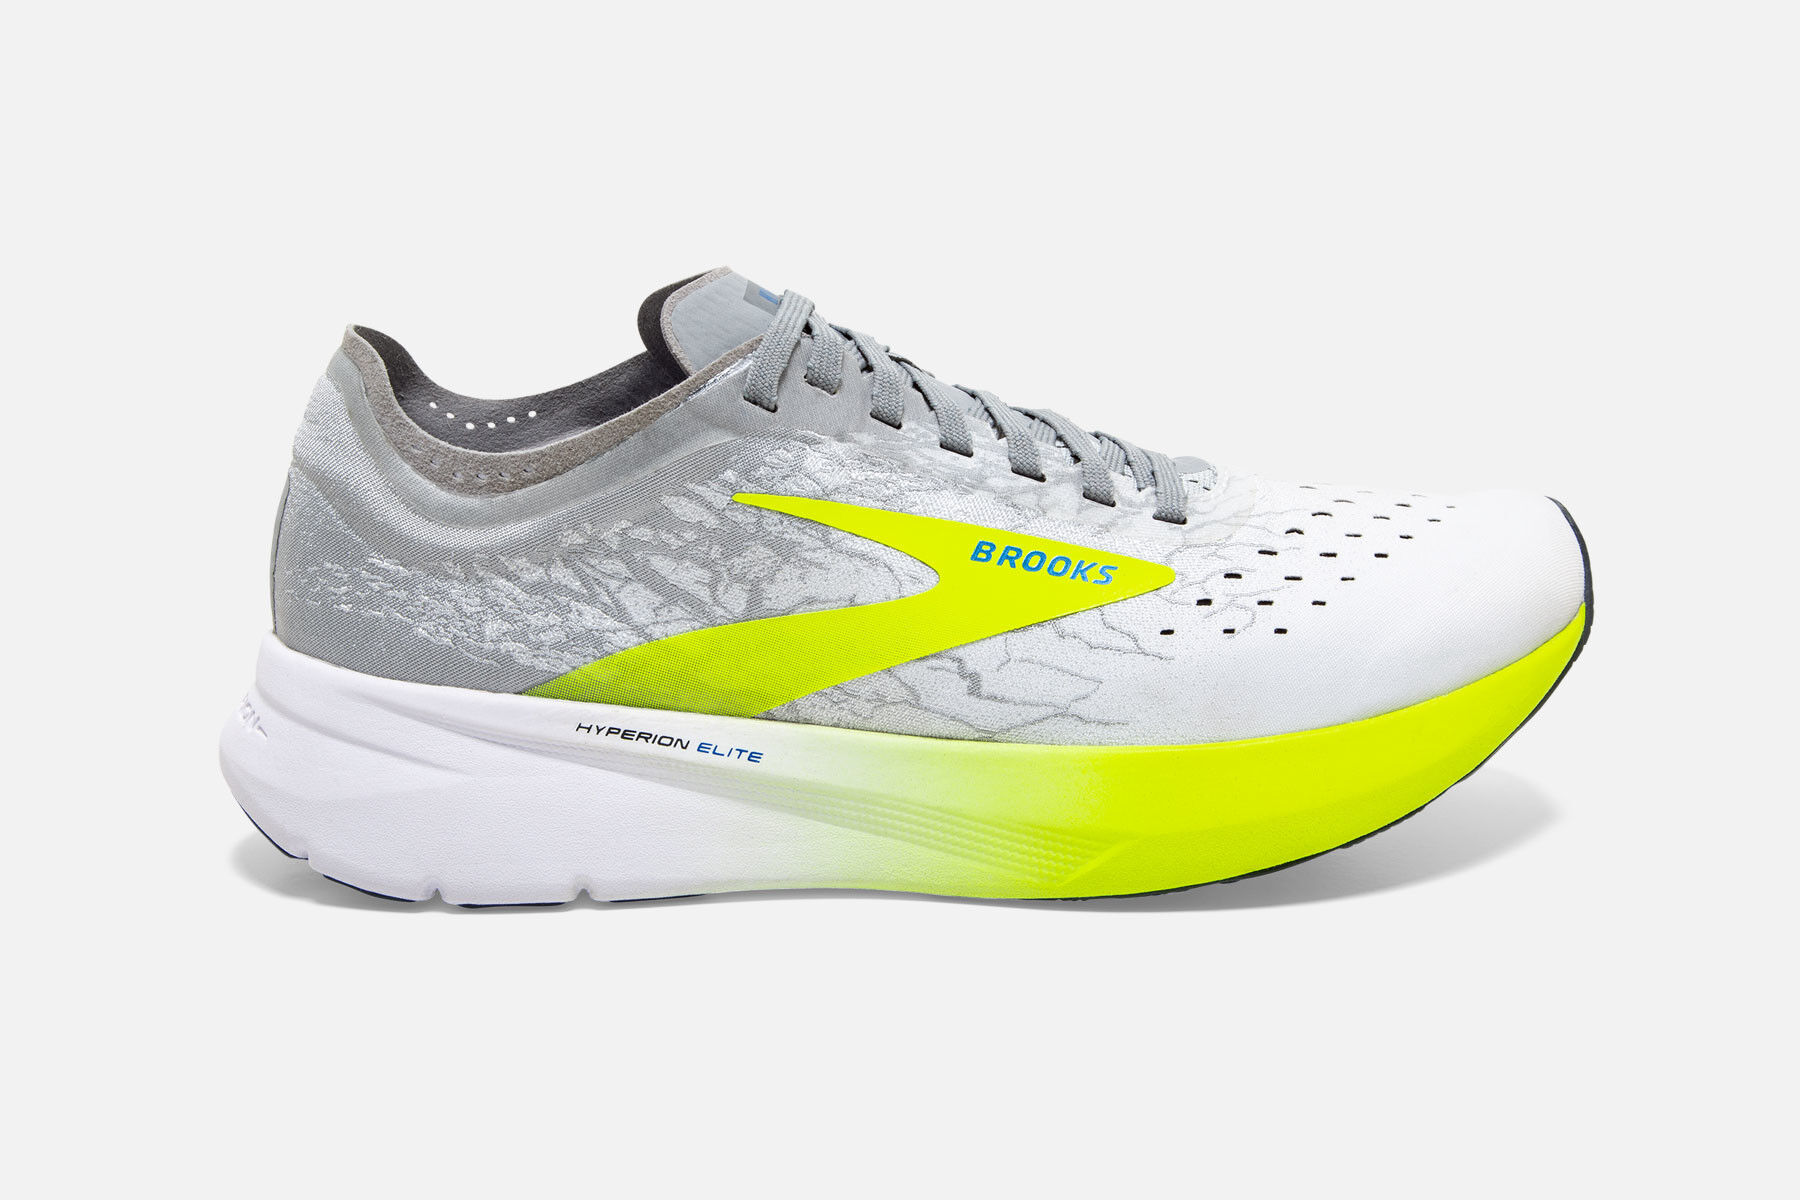 brooks tennis shoes